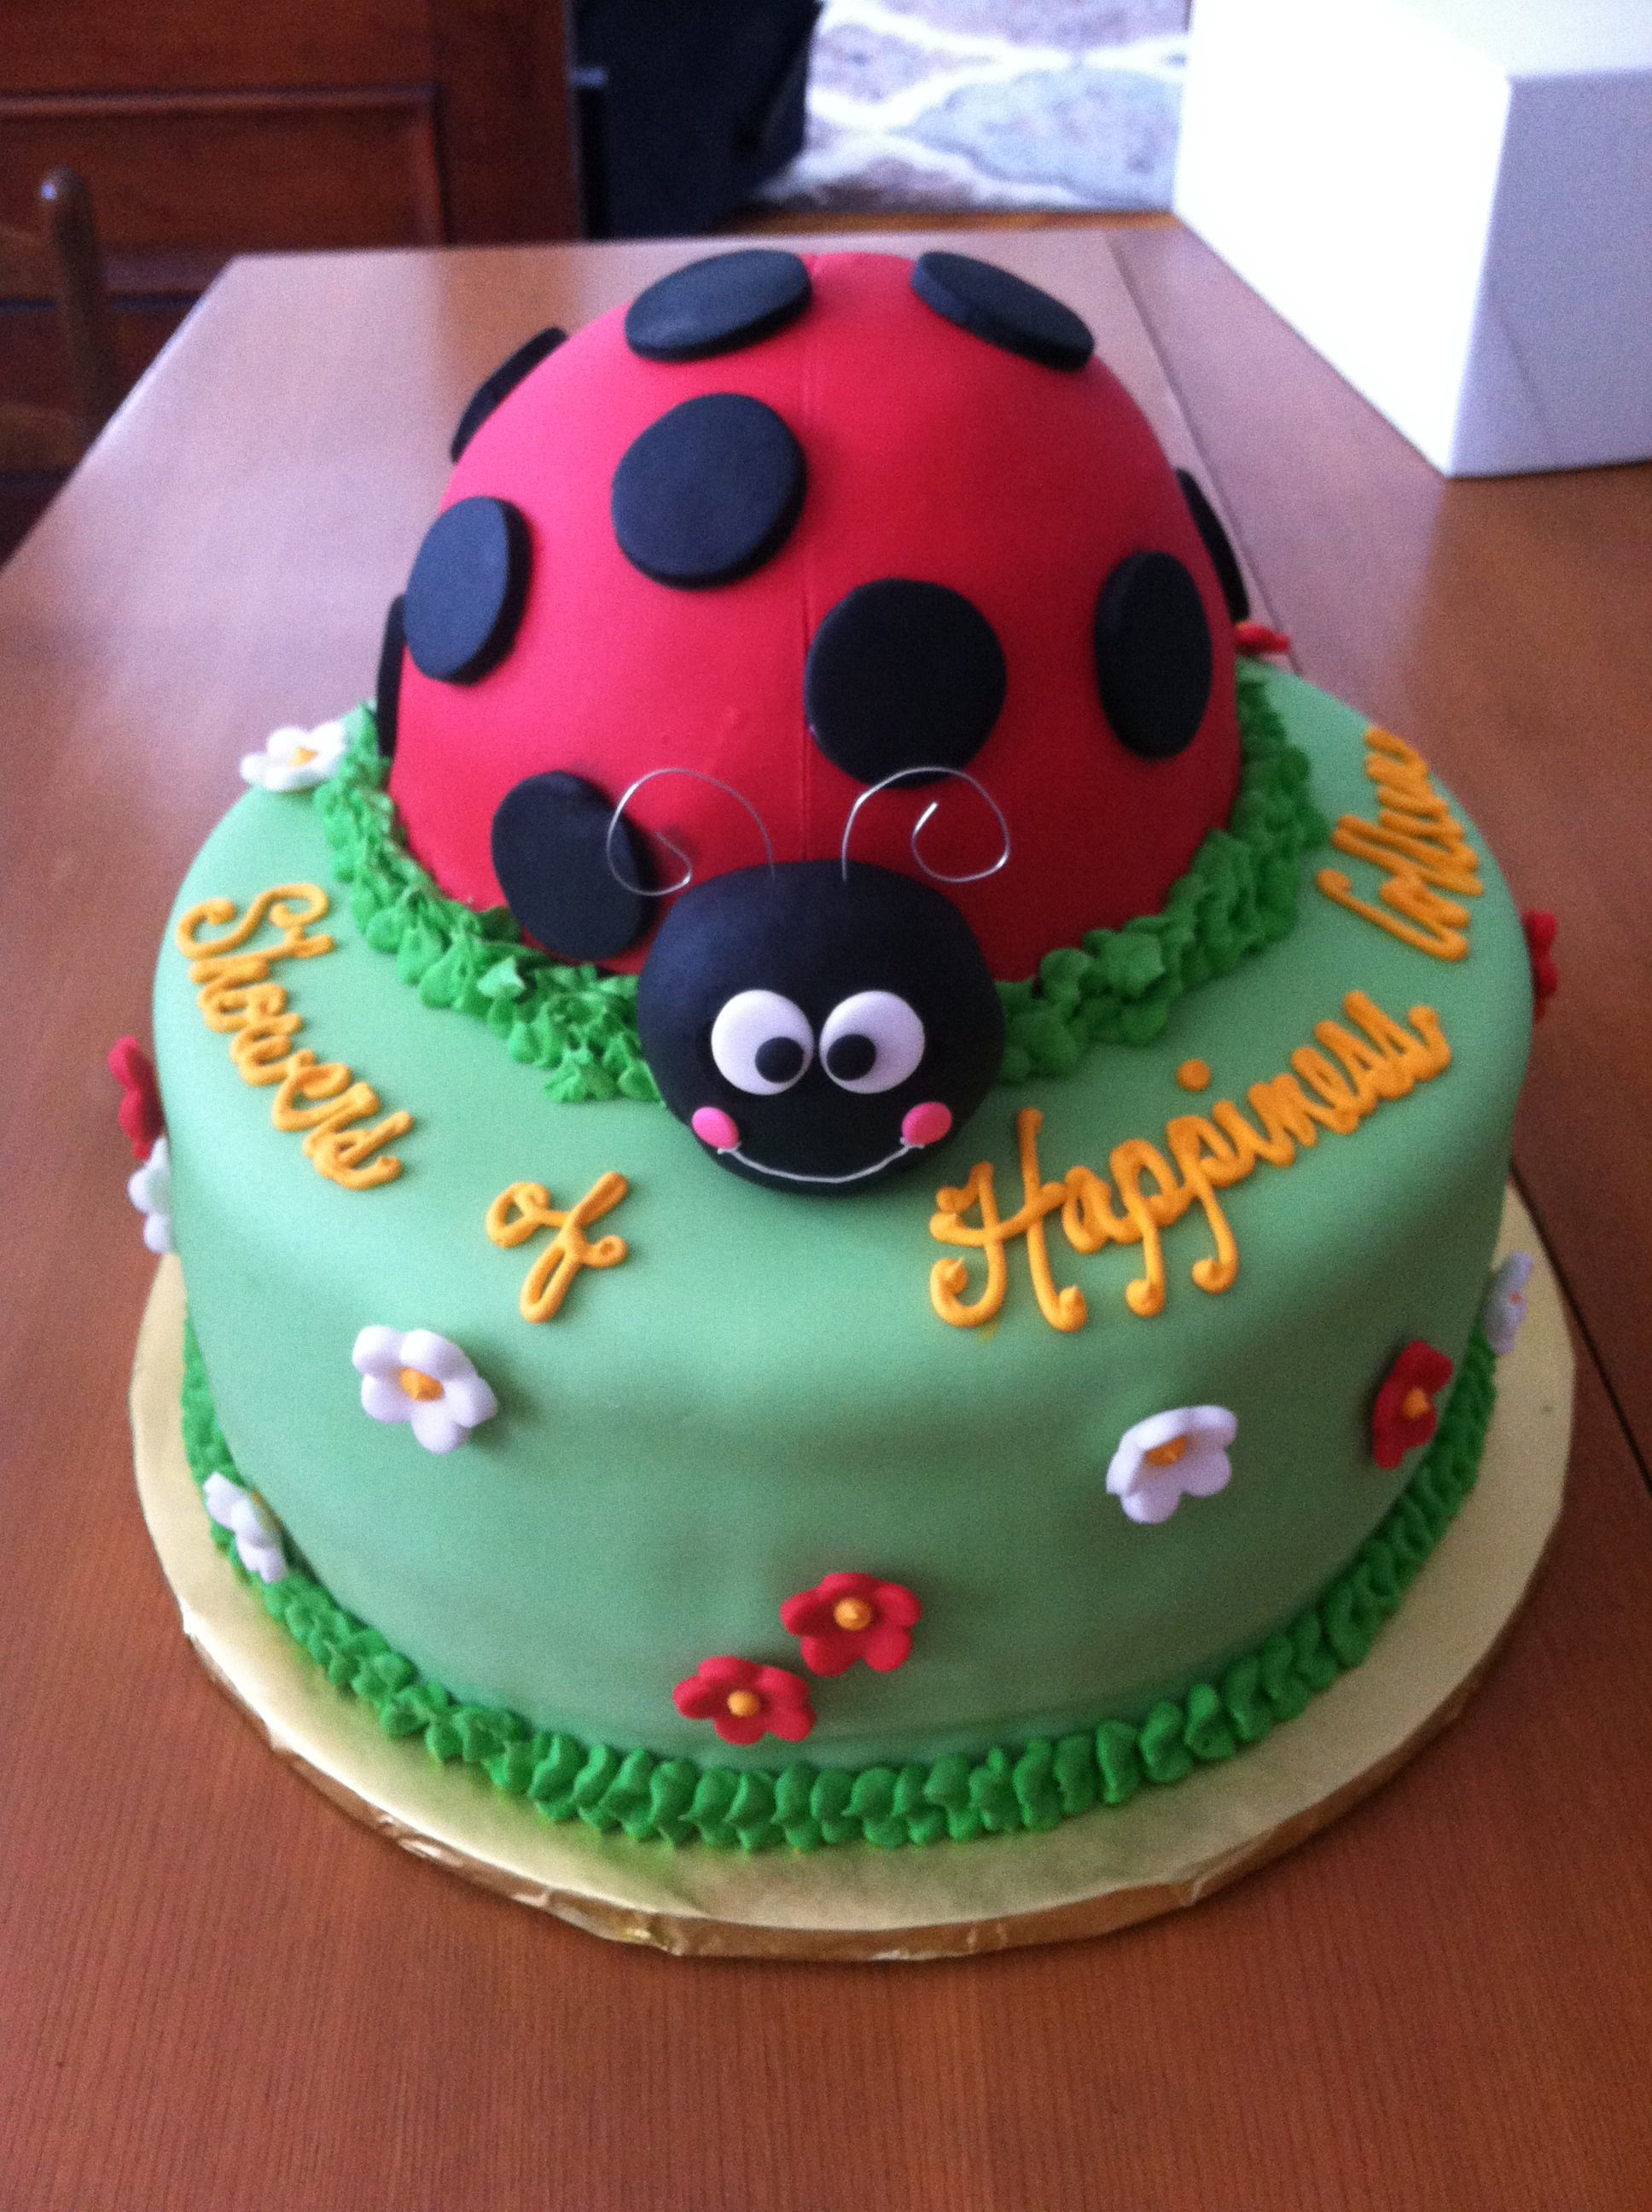 Red velvet ladybug baby shower cake Dessert Menu